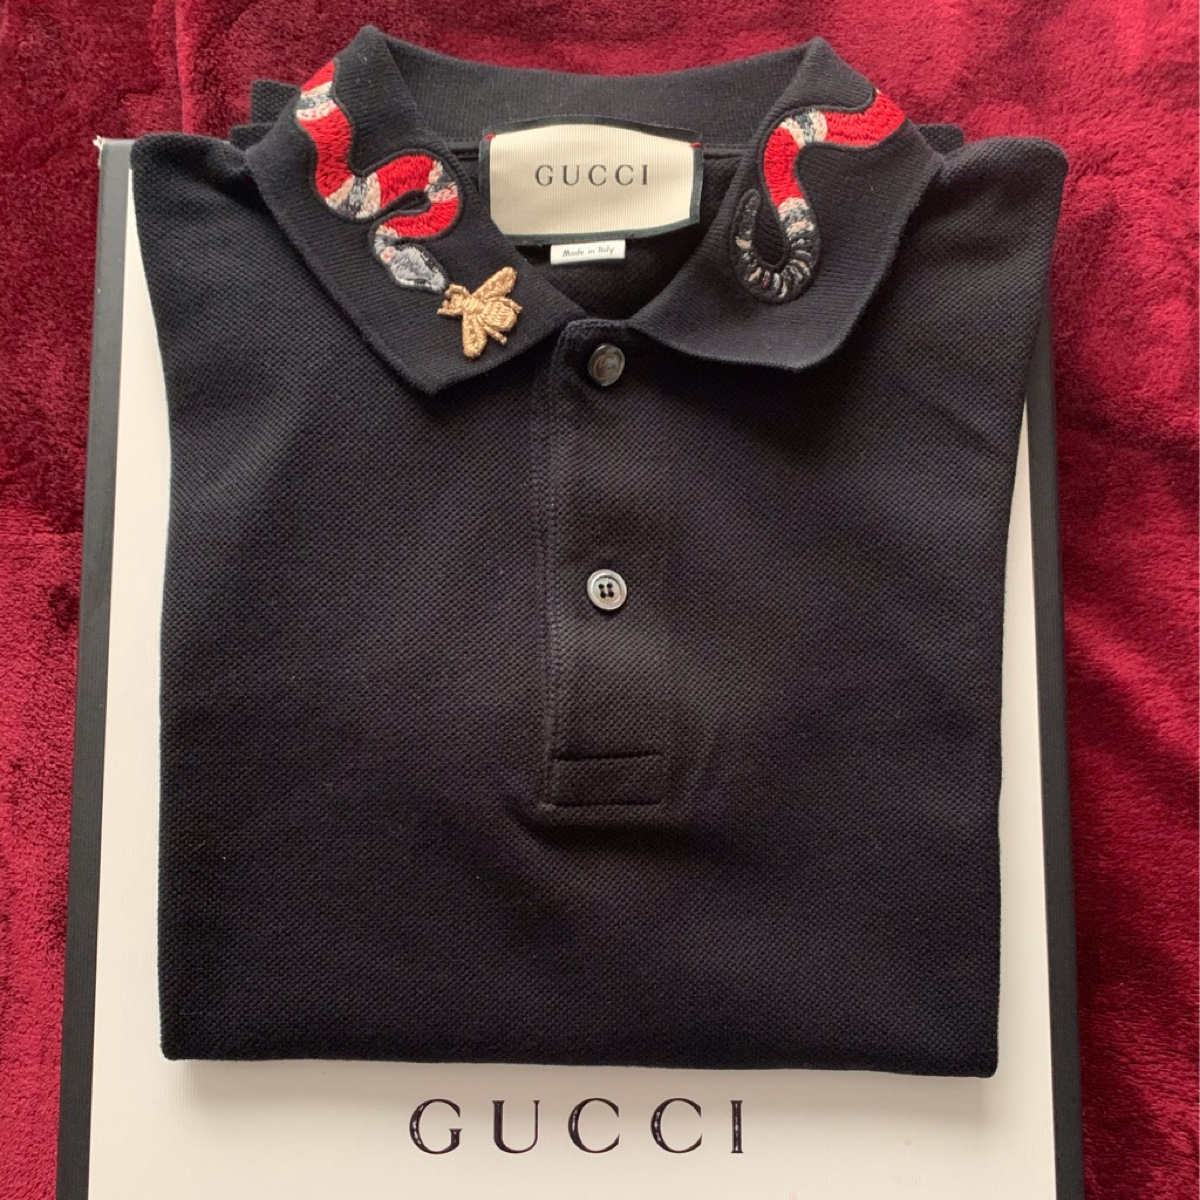 Gucci Polo Shirt With Kingsnake Embroidery